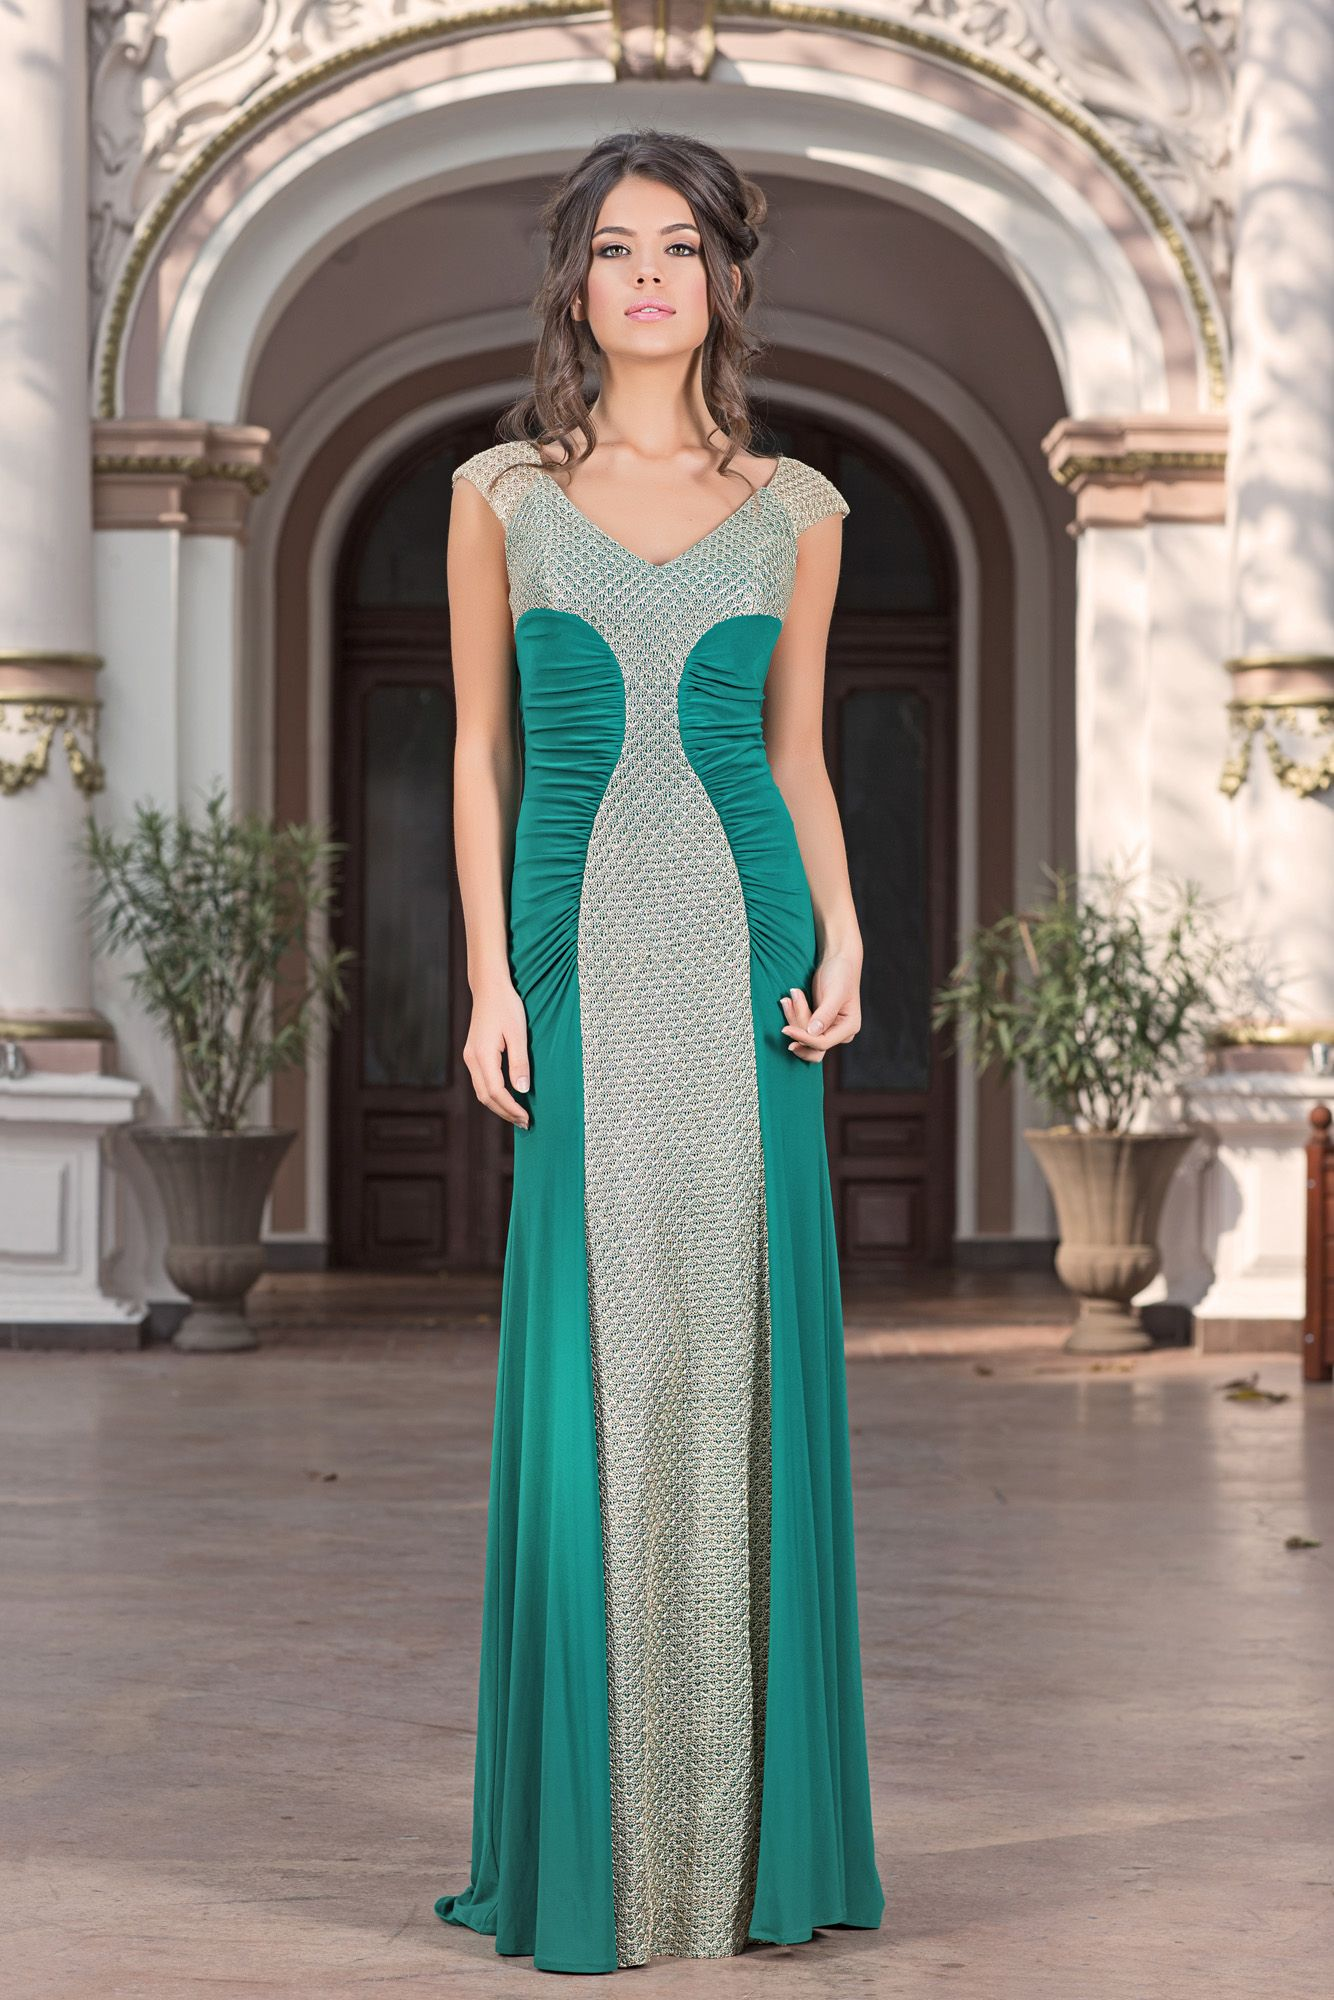 A sleek column gown by Vero Milano. The smooth body of the Adeona gown hugs curves to create a long beautiful look. The v-neck top is embellished with amazing contrasting golden thread that creates a truly lux feel. The back creates a diamond shape, to add a sultry appeal.